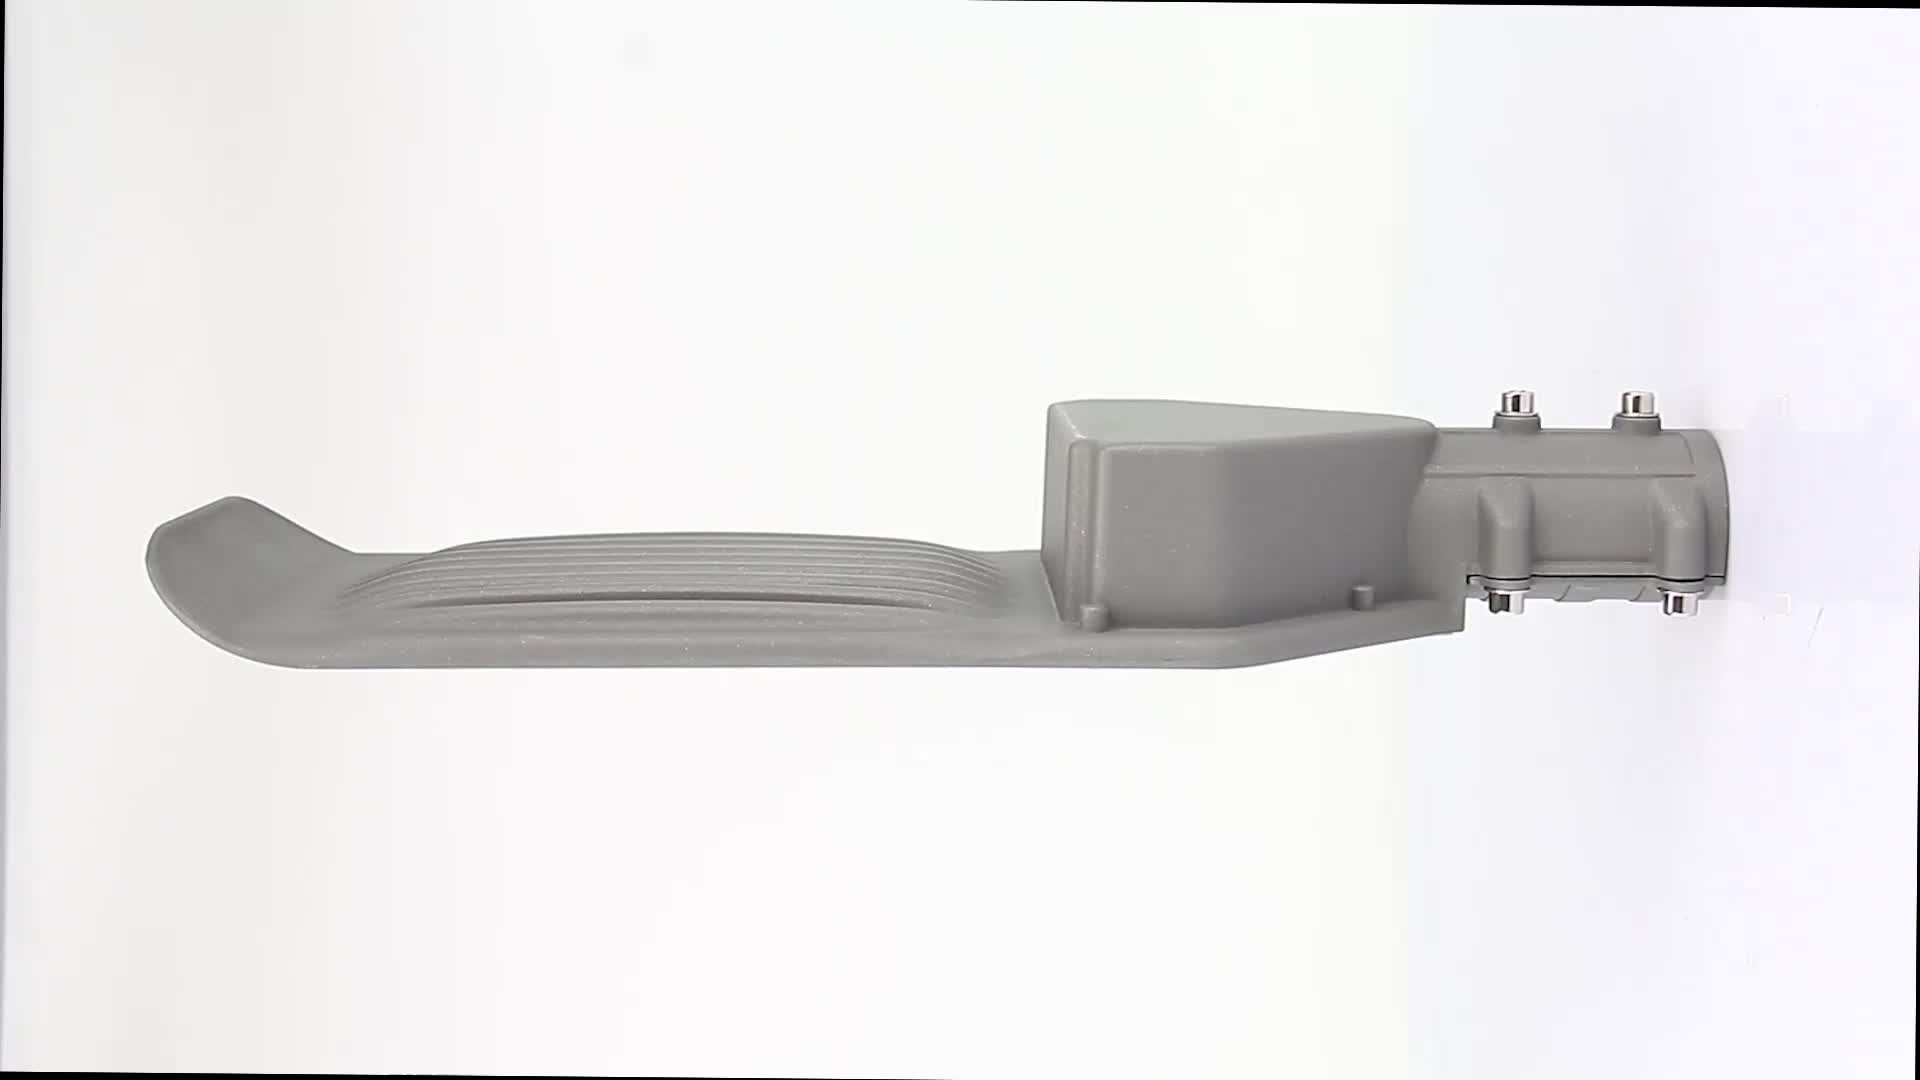 Aluminium Die Casting High Power Modul Manufactr IP65 Outdoor Lampadaire Solaire 30 W 50 W 100 W 150 W 200 W LED Street Light